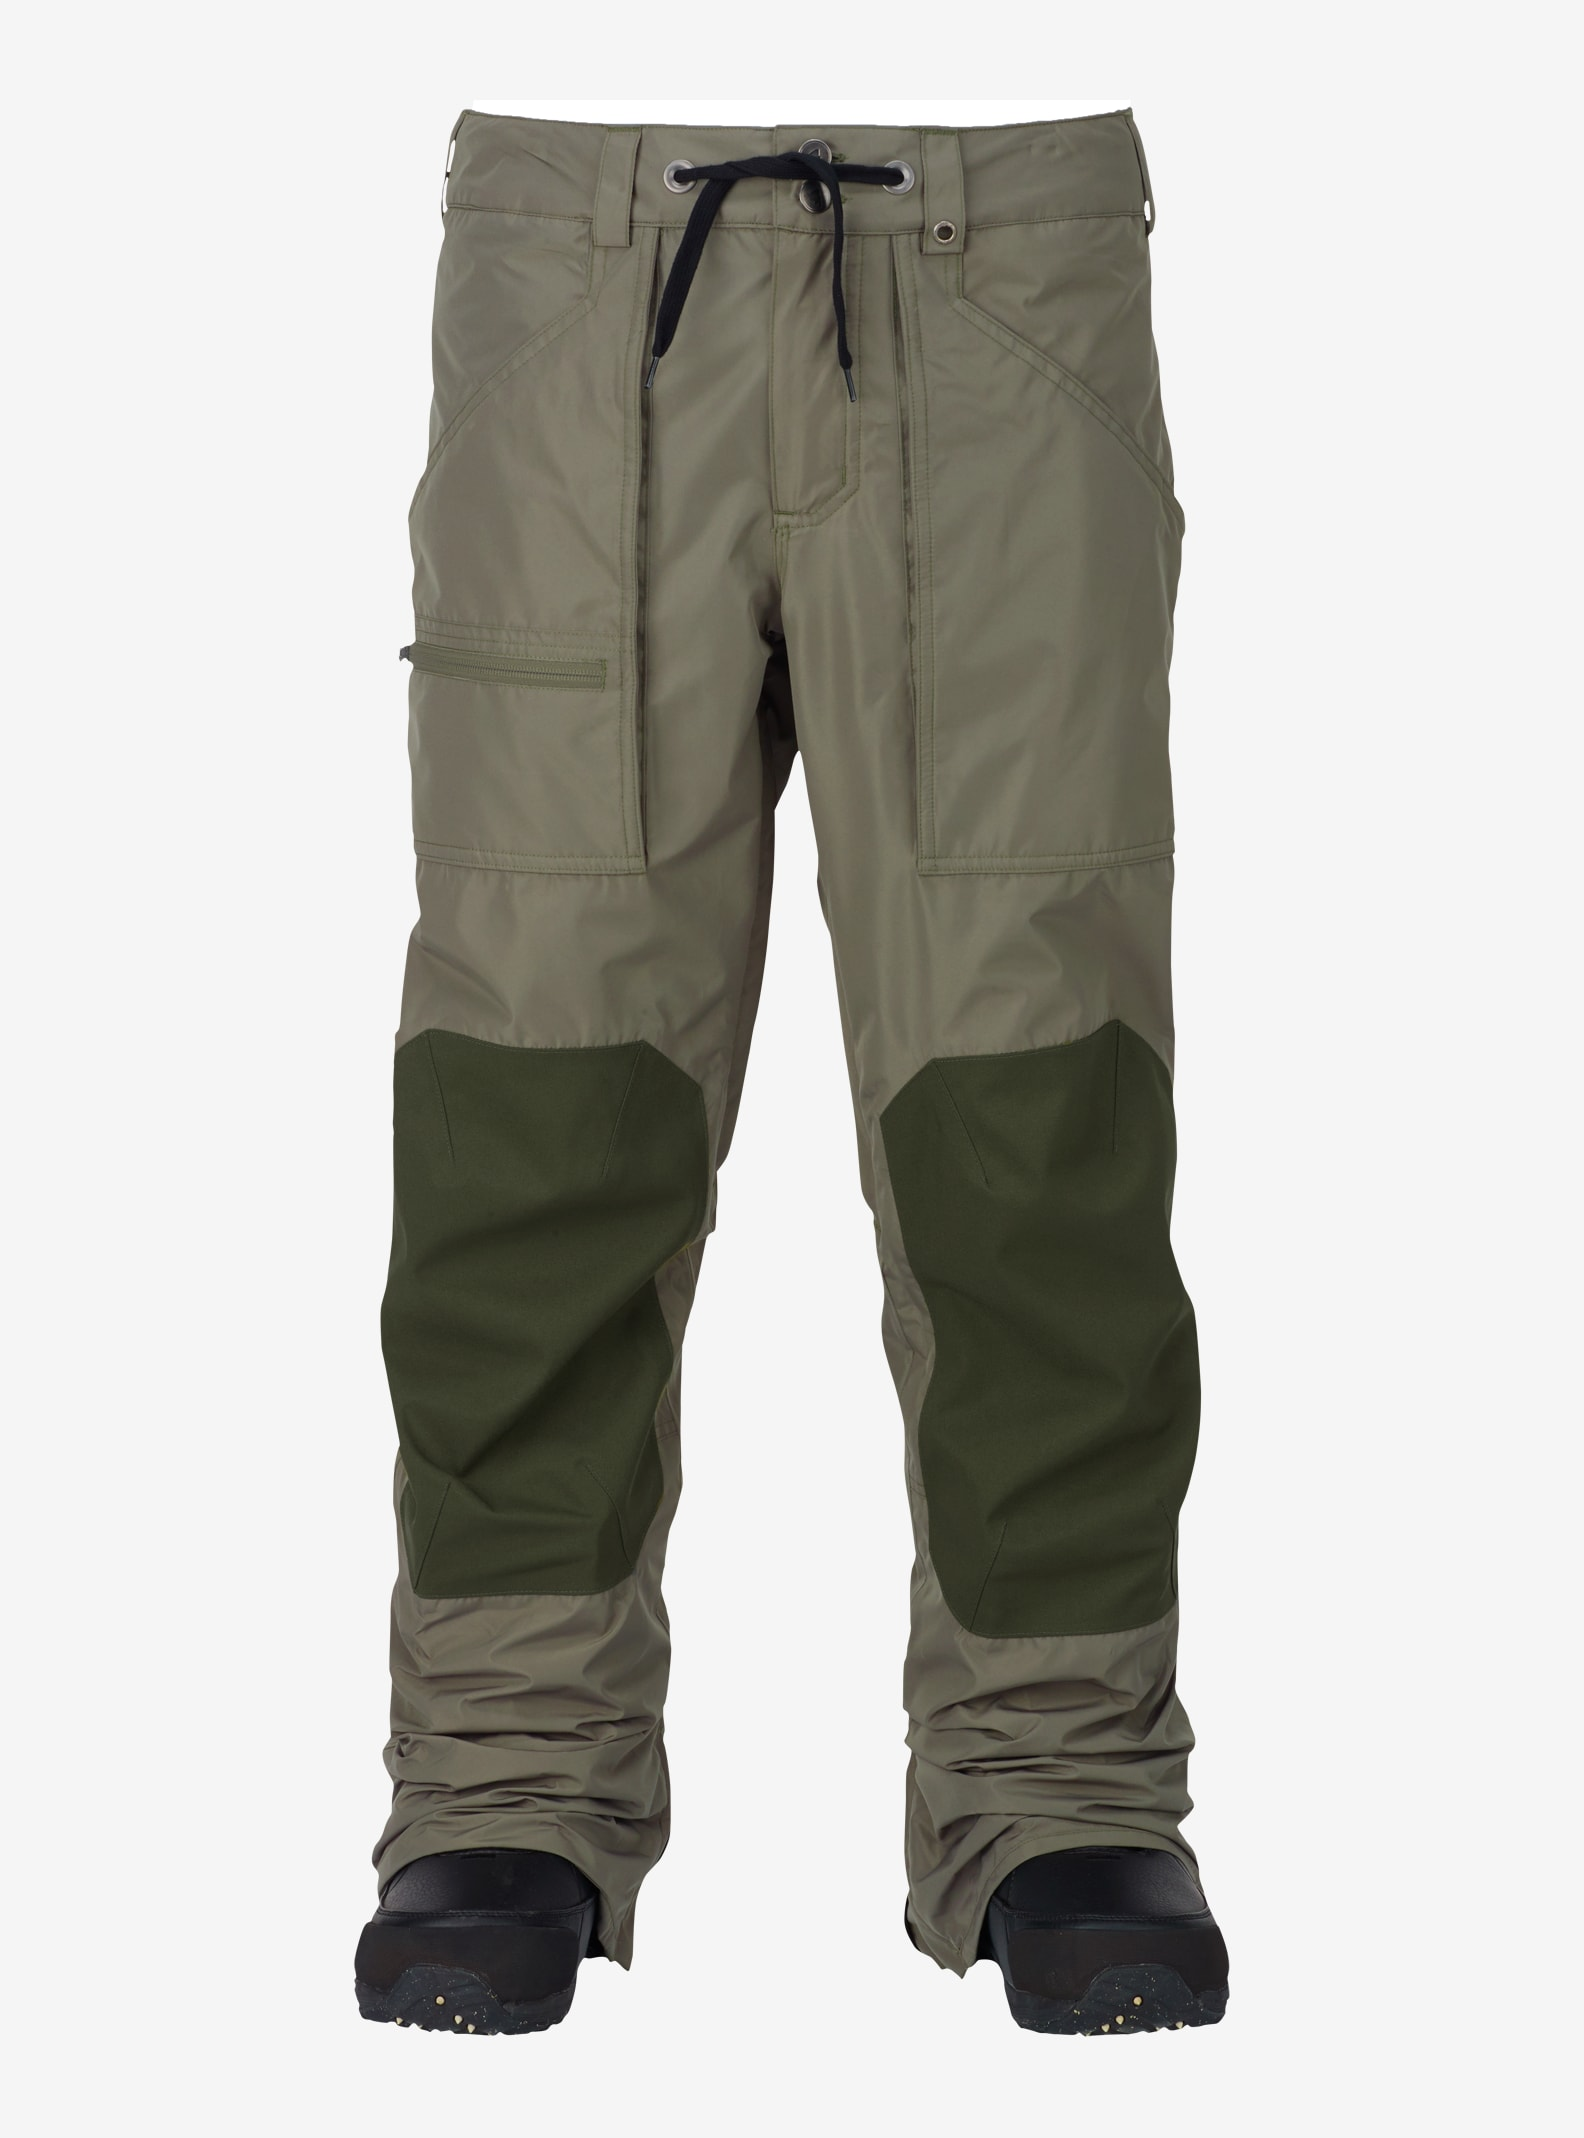 Burton Southside Pant - Regular Fit shown in Rucksack / Keef